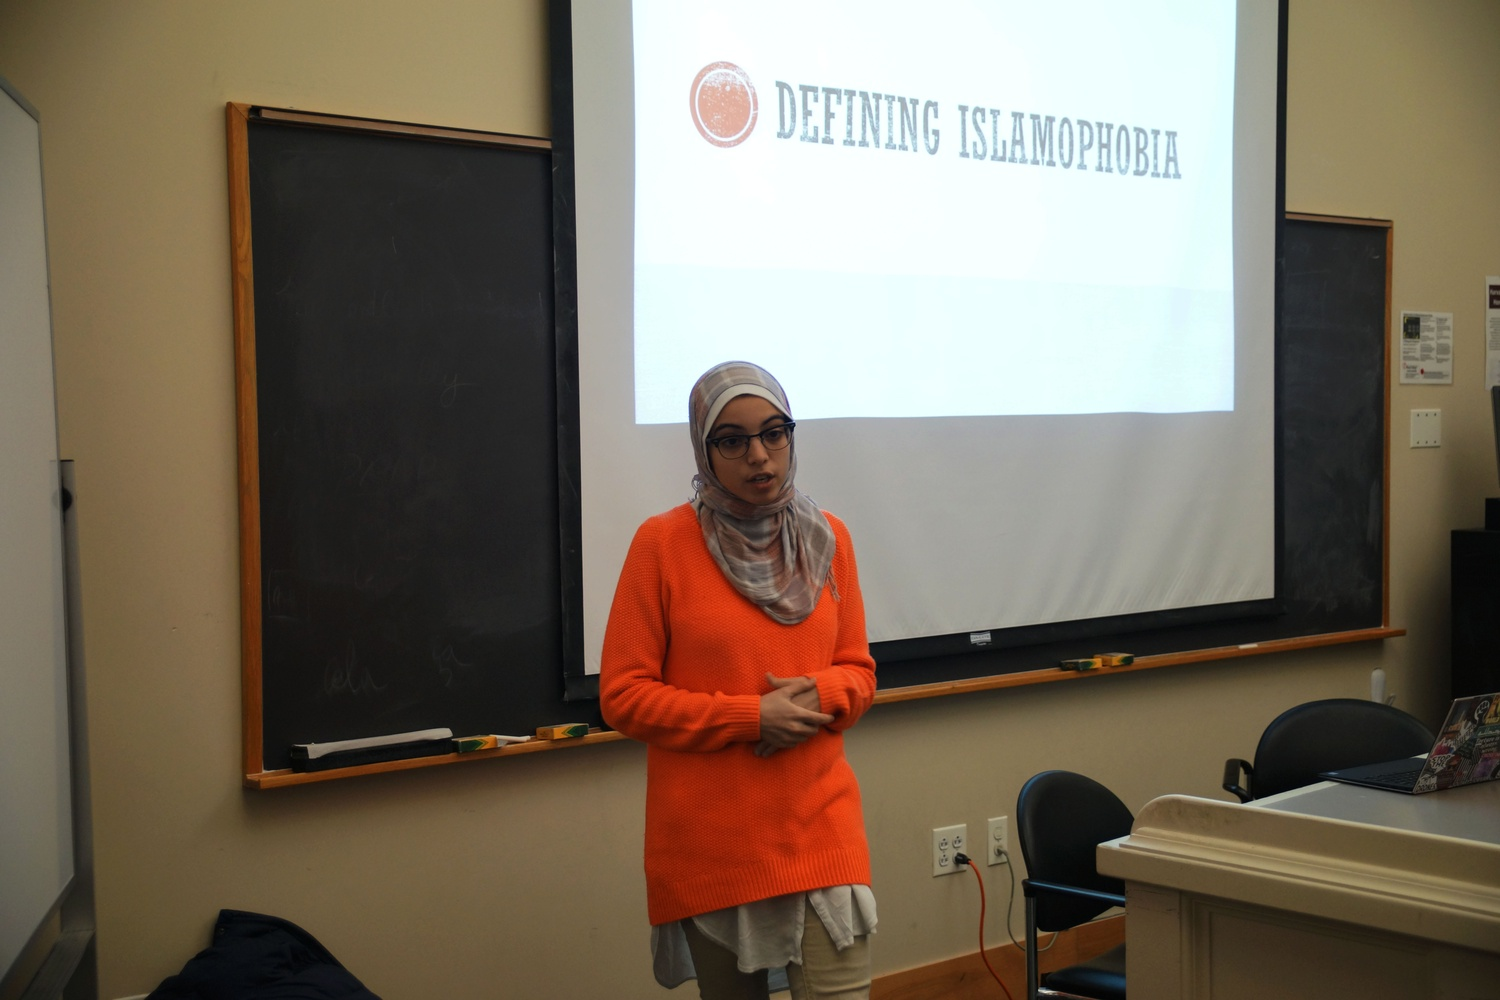 Anwar Omeish '18 gives a talk on Islamophobia as part of the Stand Up With Our Muslim Neighbors event held at Boylston Hall Monday night.